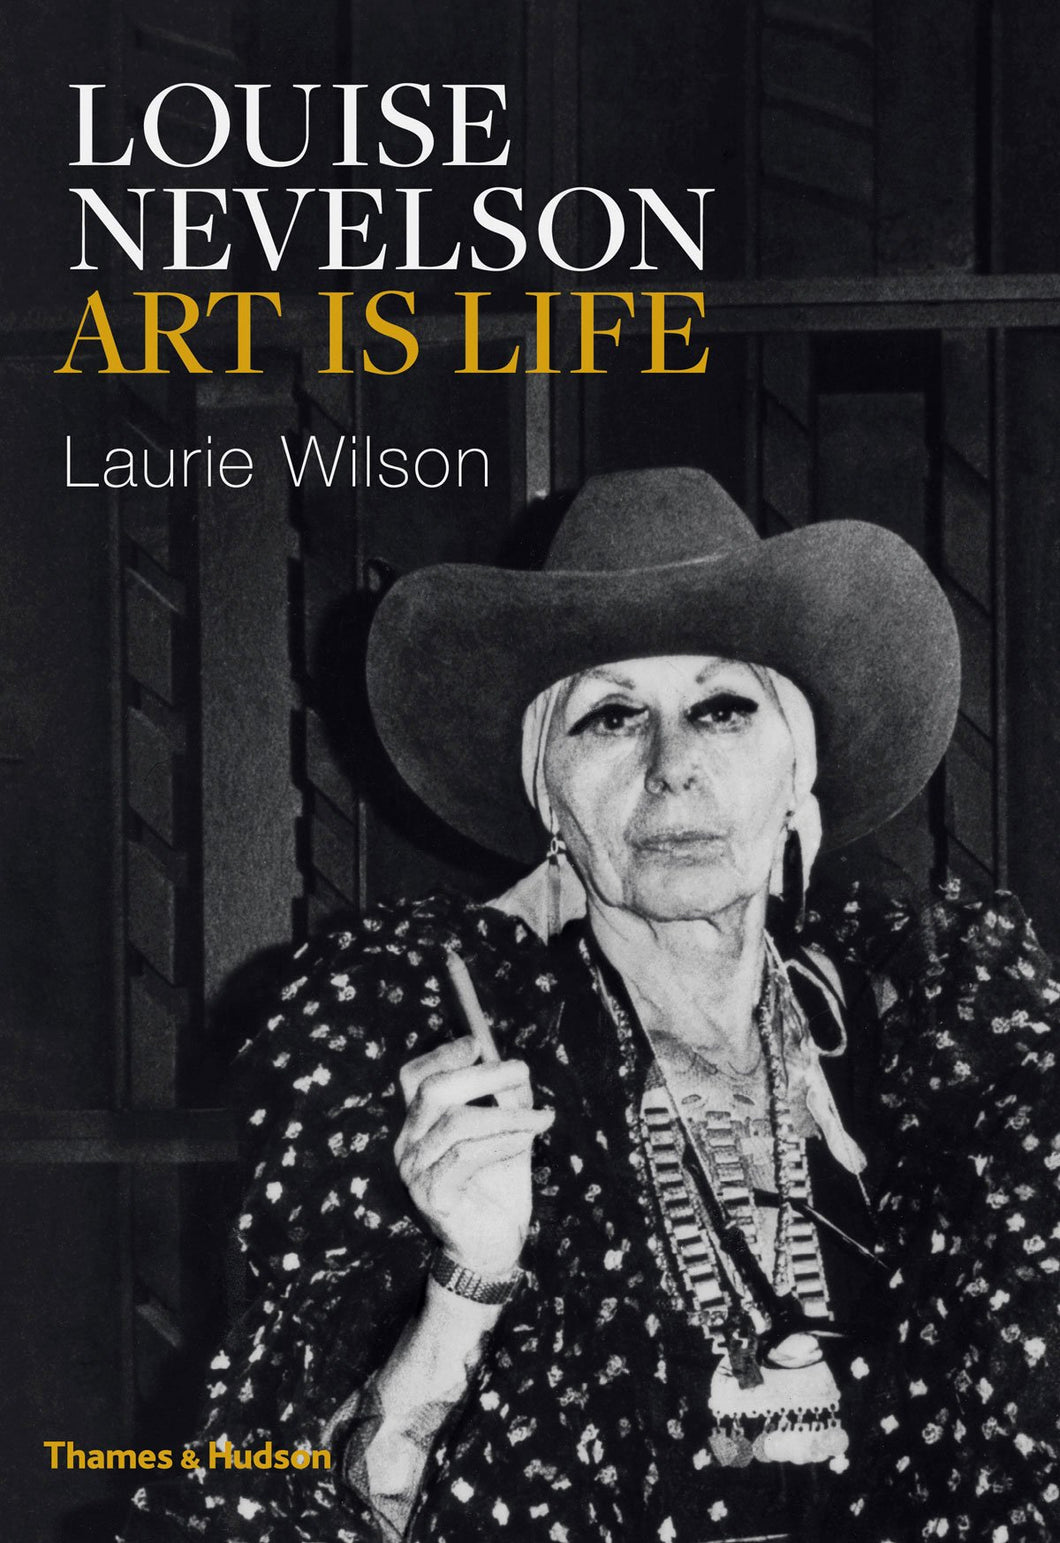 Louise Nevelson: Light and Shadow - Vancelette Global Art Acquisitions